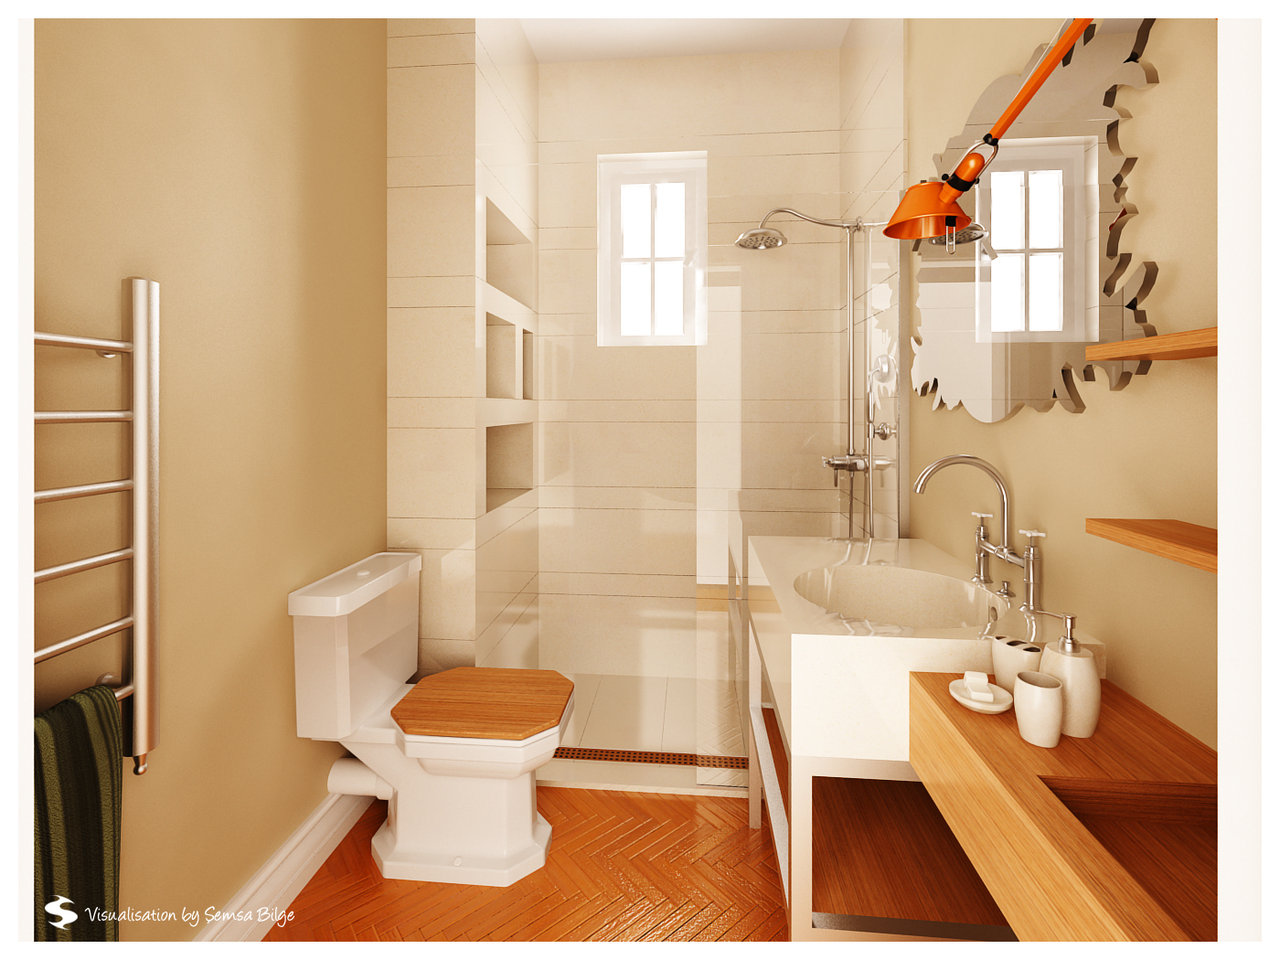 Remarkable Unique Small Bathroom Design 1280 x 960 · 201 kB · jpeg